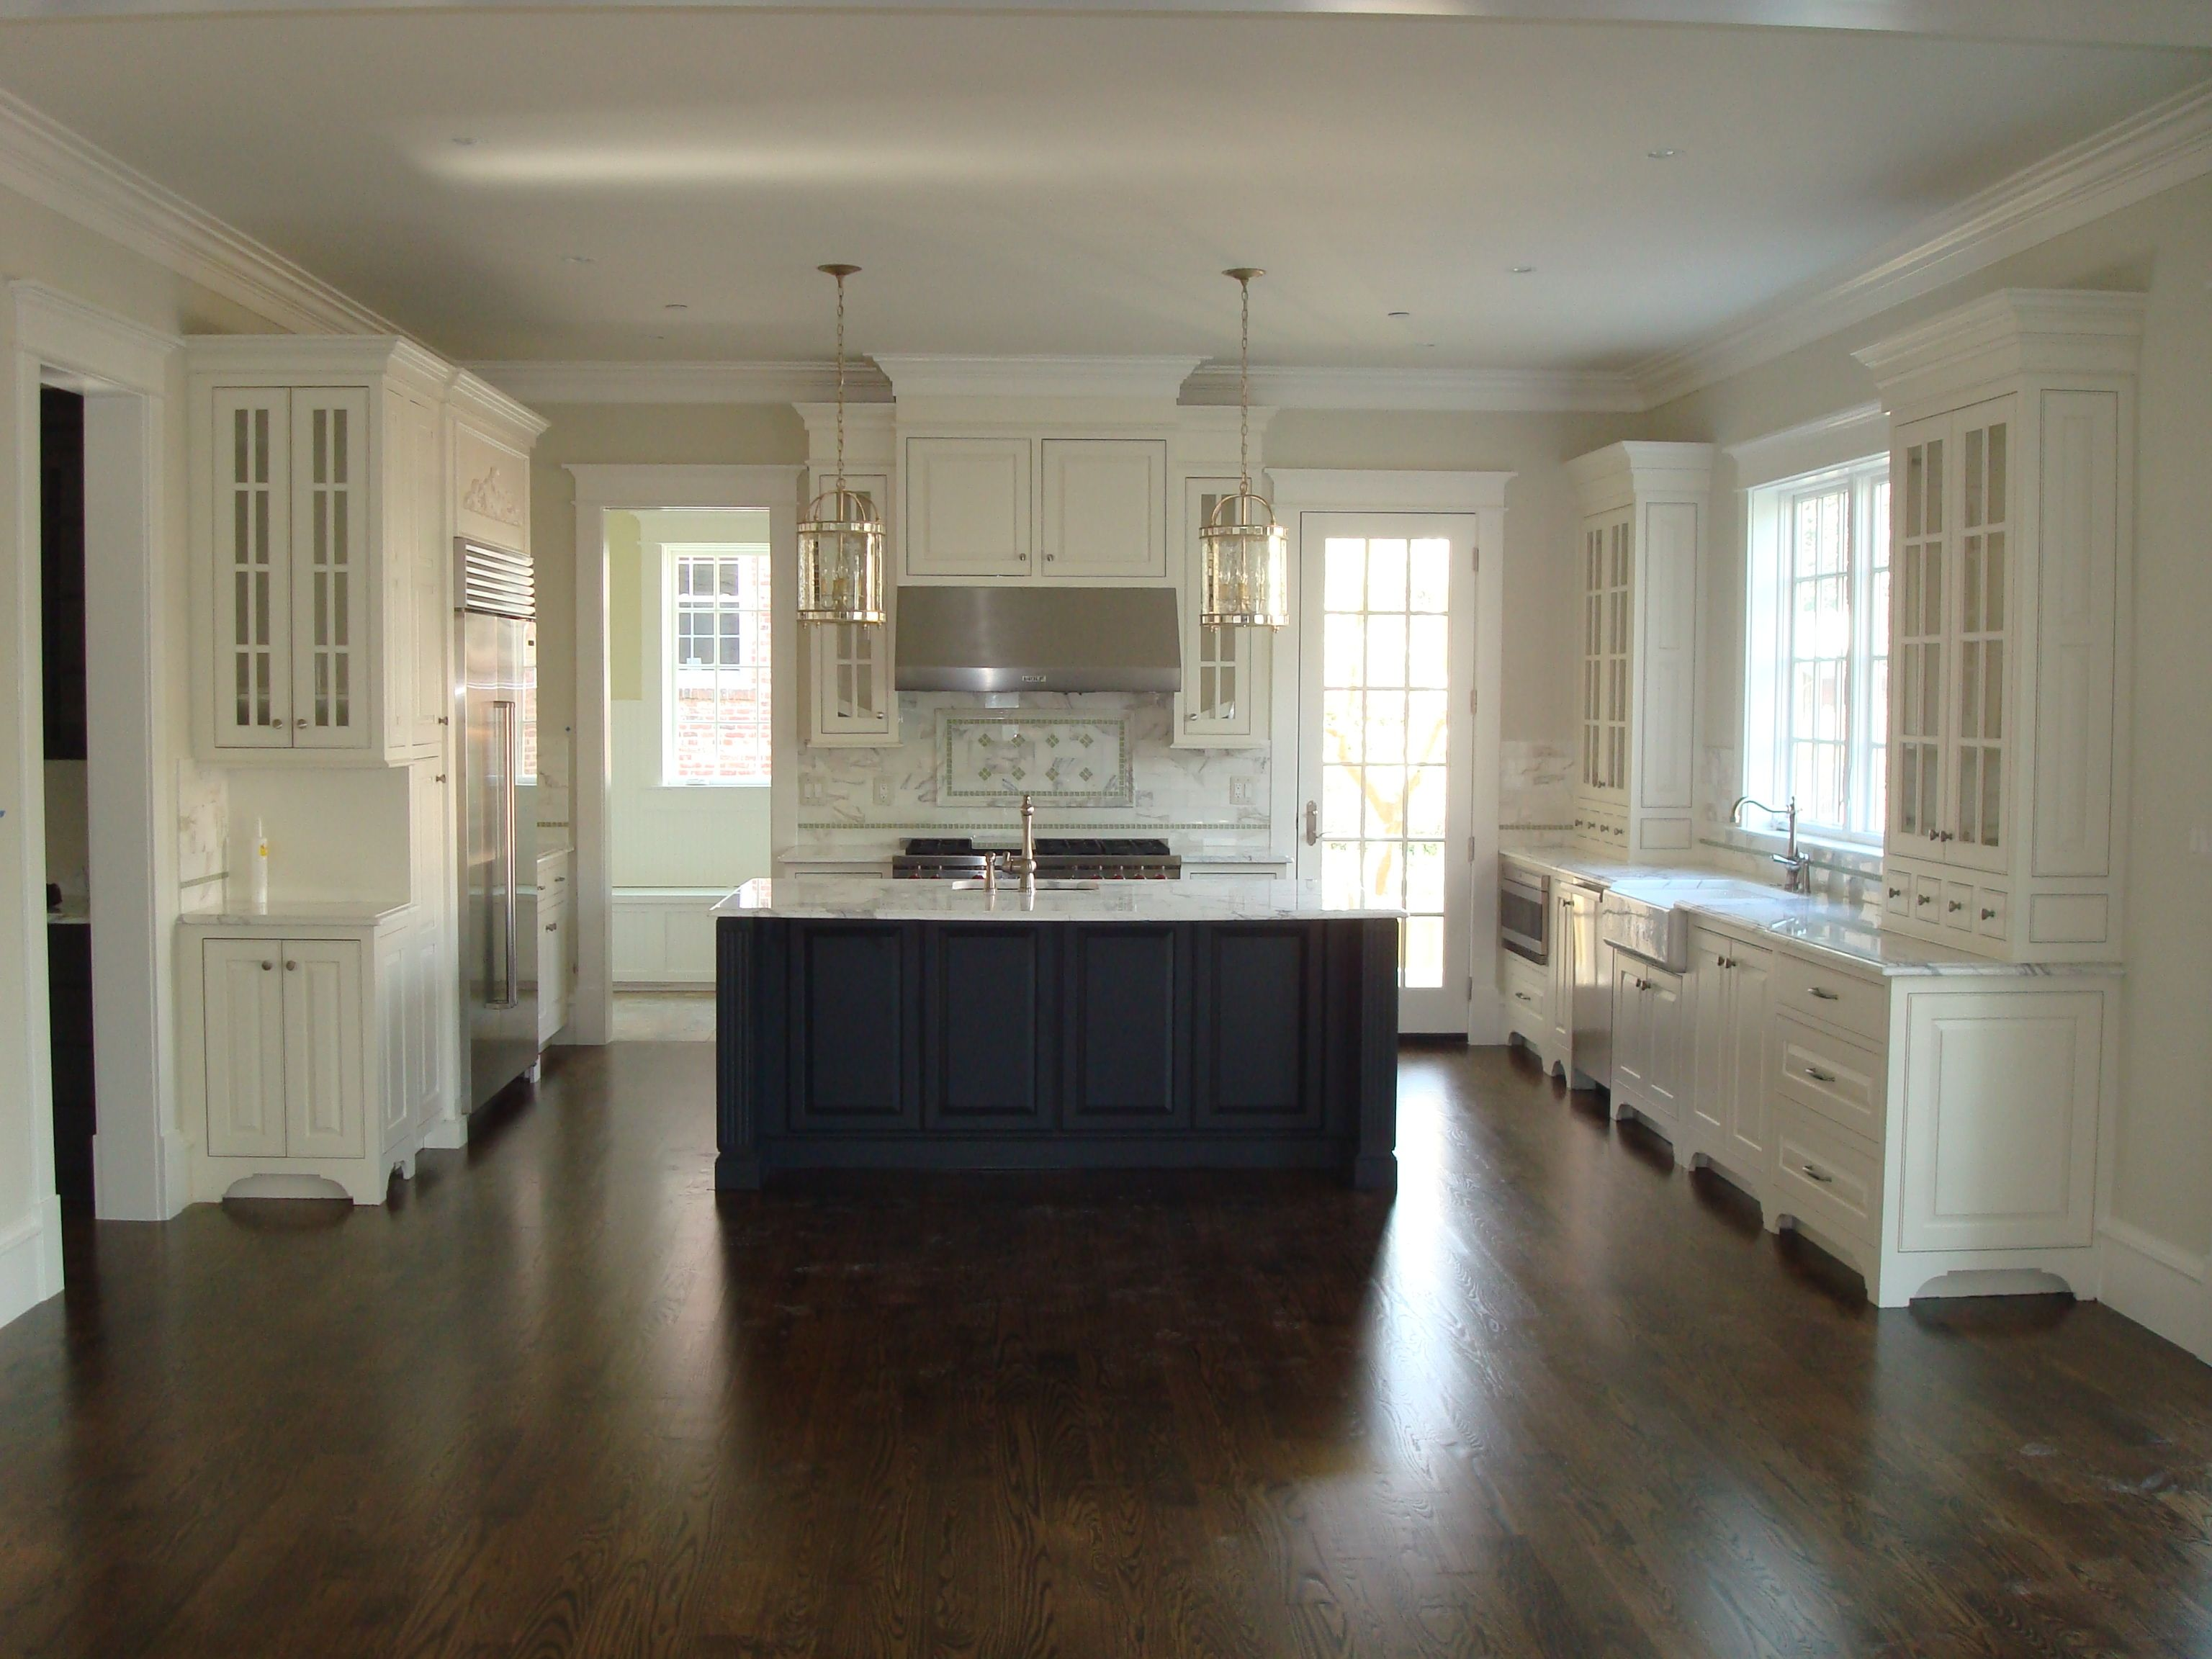 Custom Cabinetry Hagerstown Kitchens Remodeling Cabinets Hagerstown Md Kitchen Remodel Design Kitchen Remodel Kitchen Cabinet Remodel